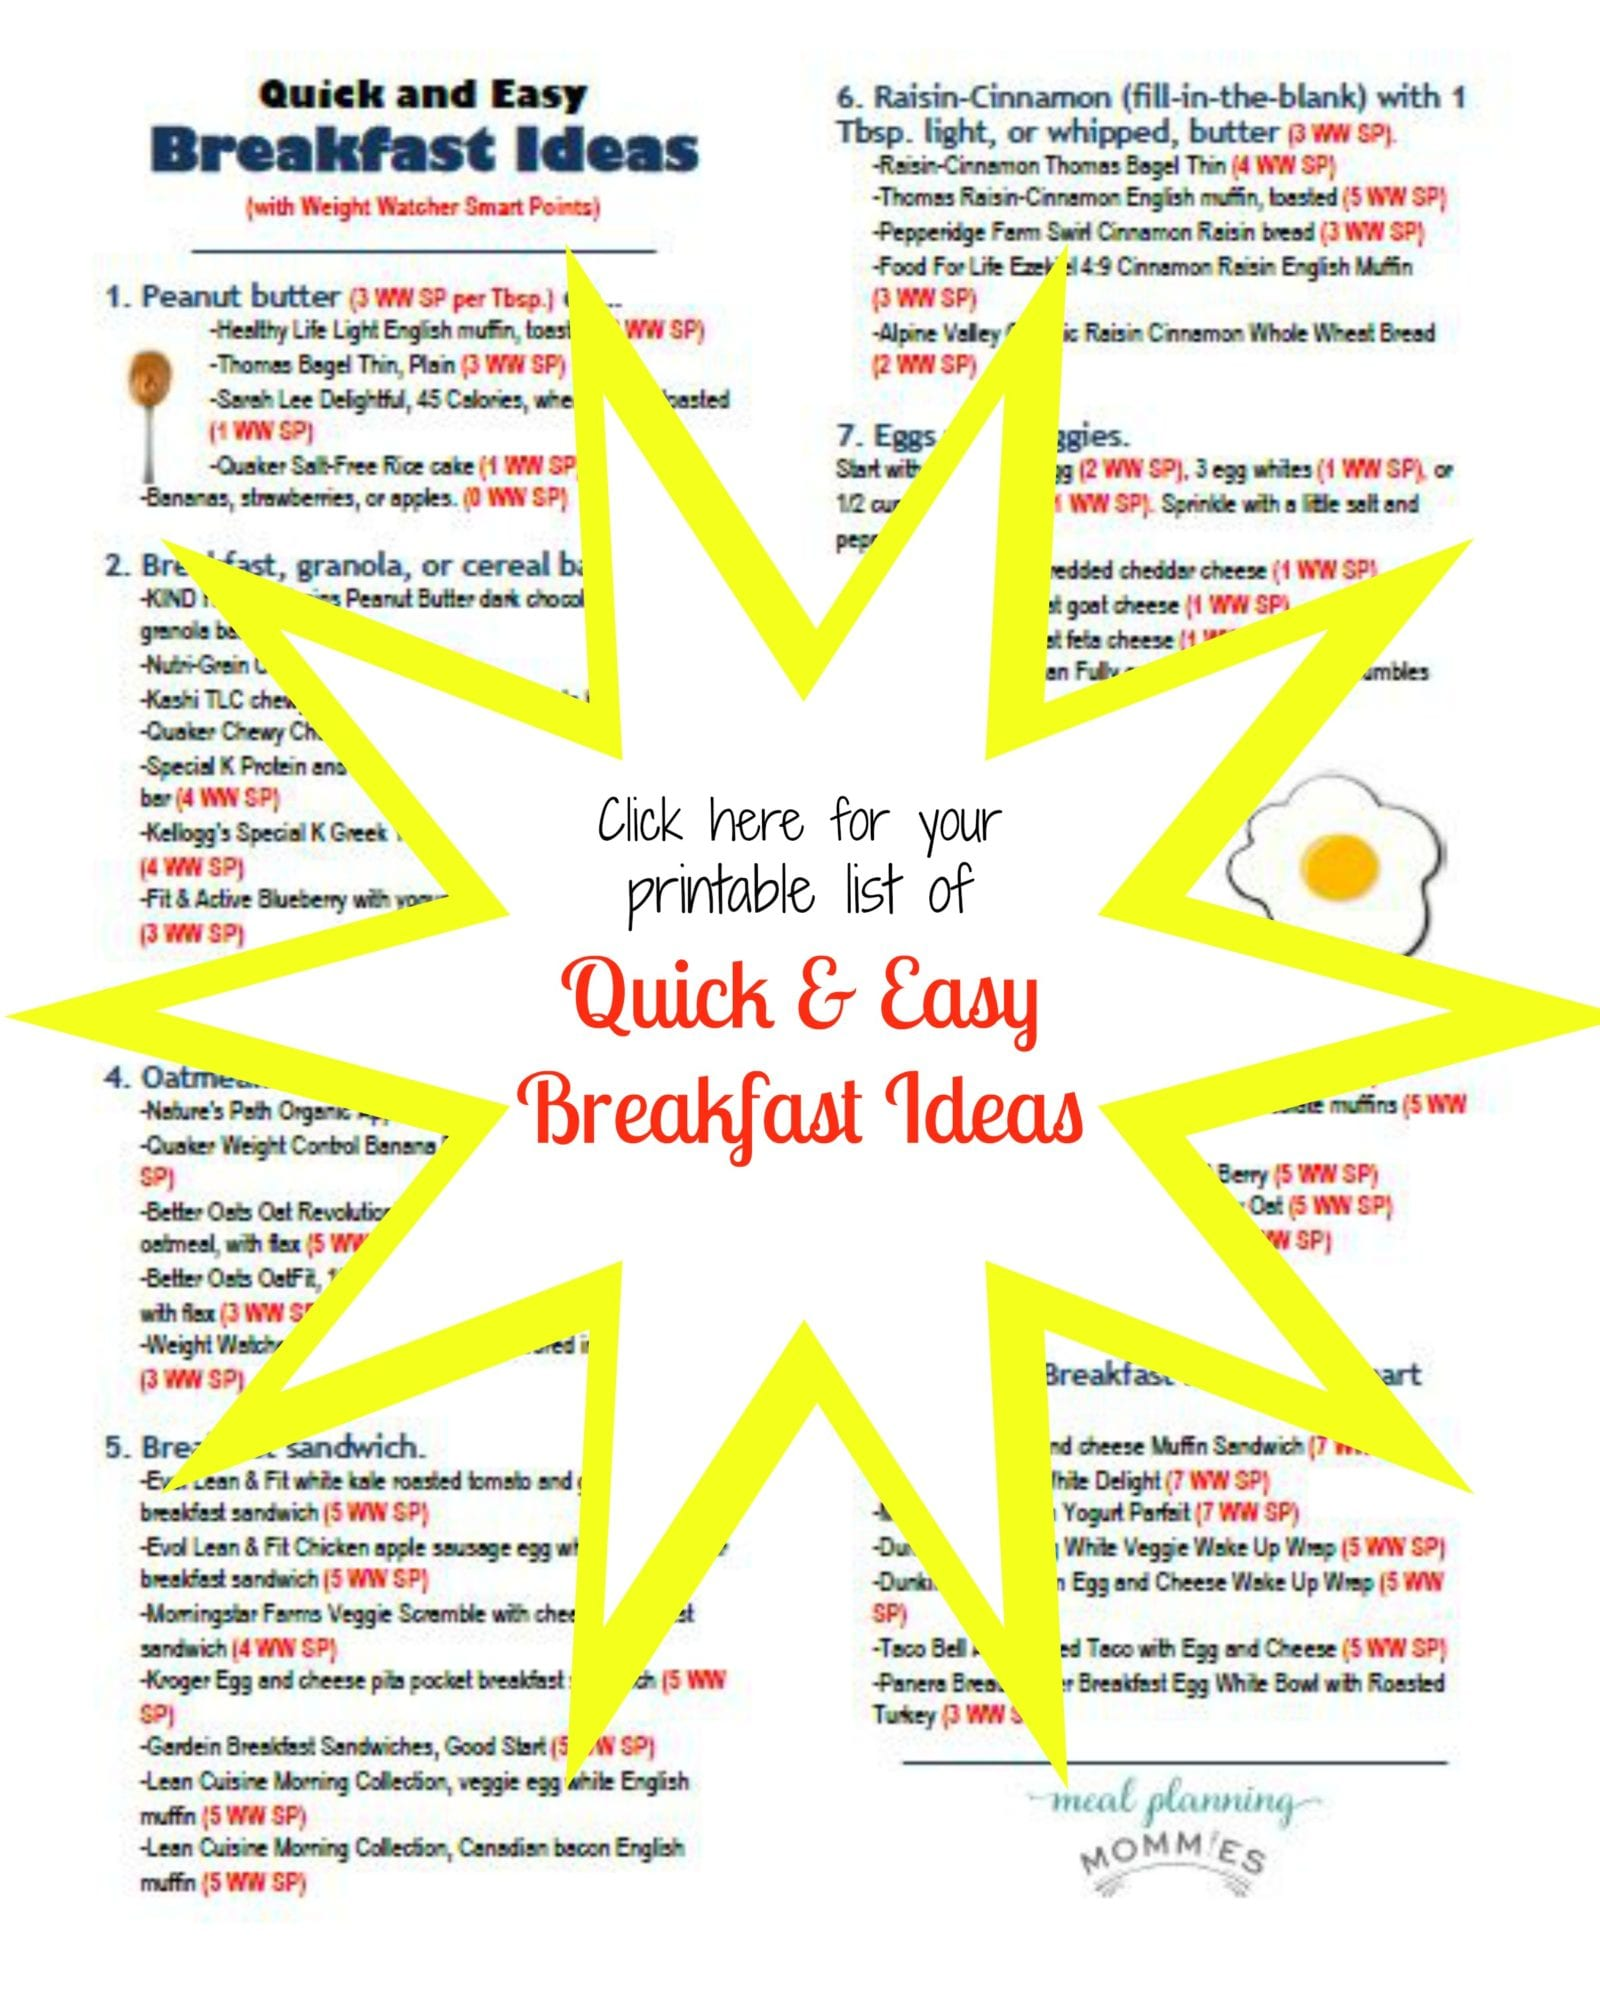 Quick And Easy Breakfast Ideas With Weight Watcher